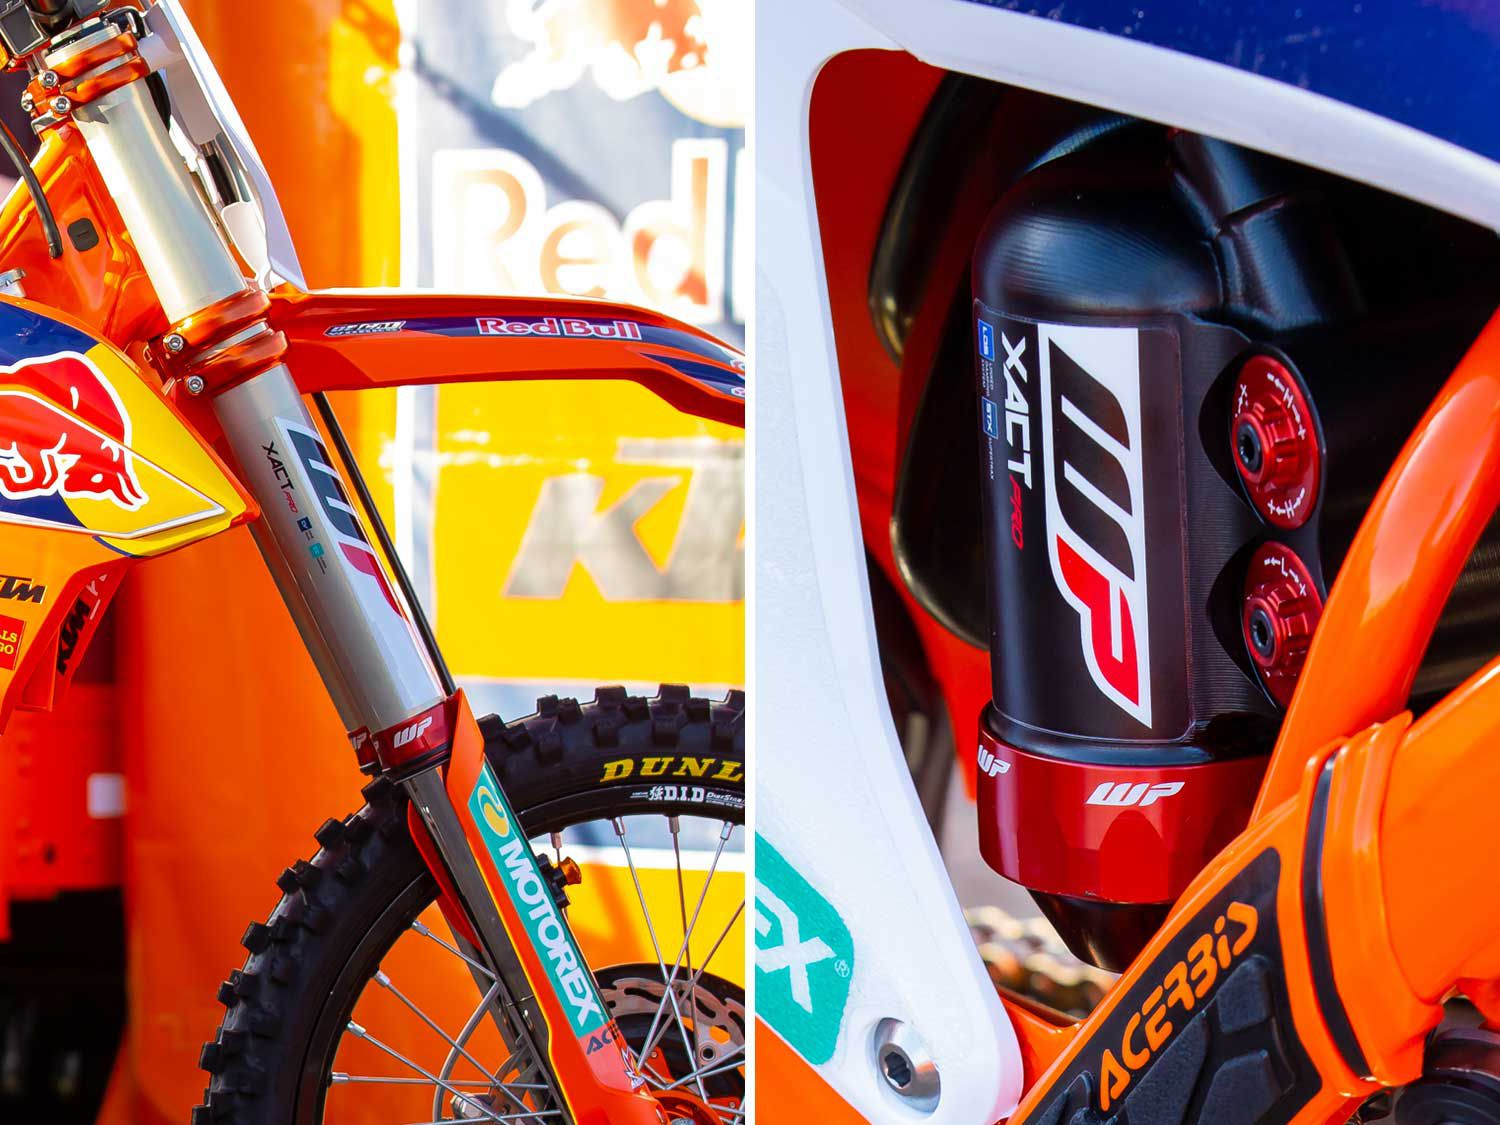 Webb focuses heavily on the balance of his WP factory suspension components.